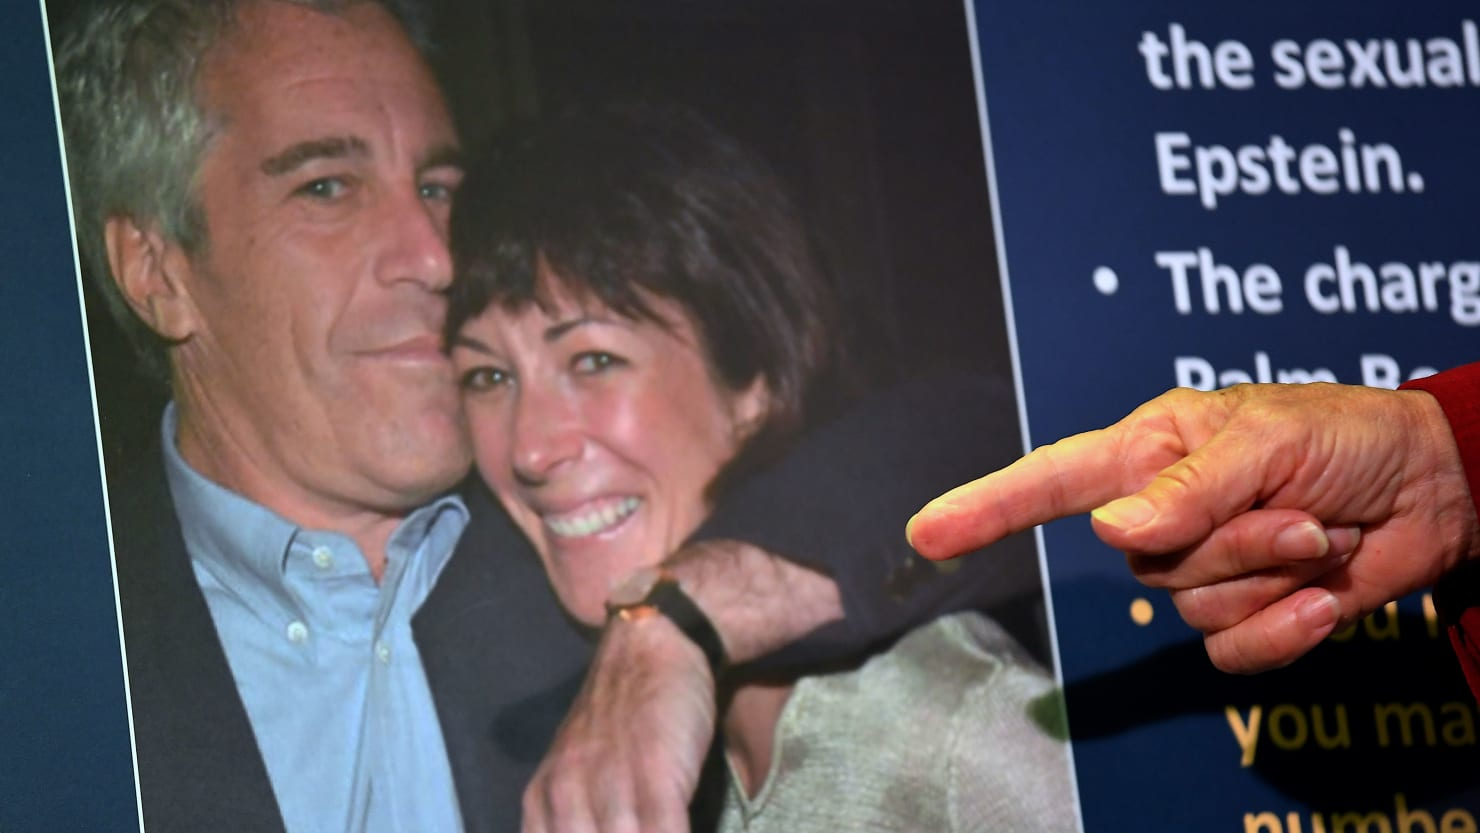 Epstein and Ghislaine Maxwell Forced Young Girls Into an Orgy: Court Records